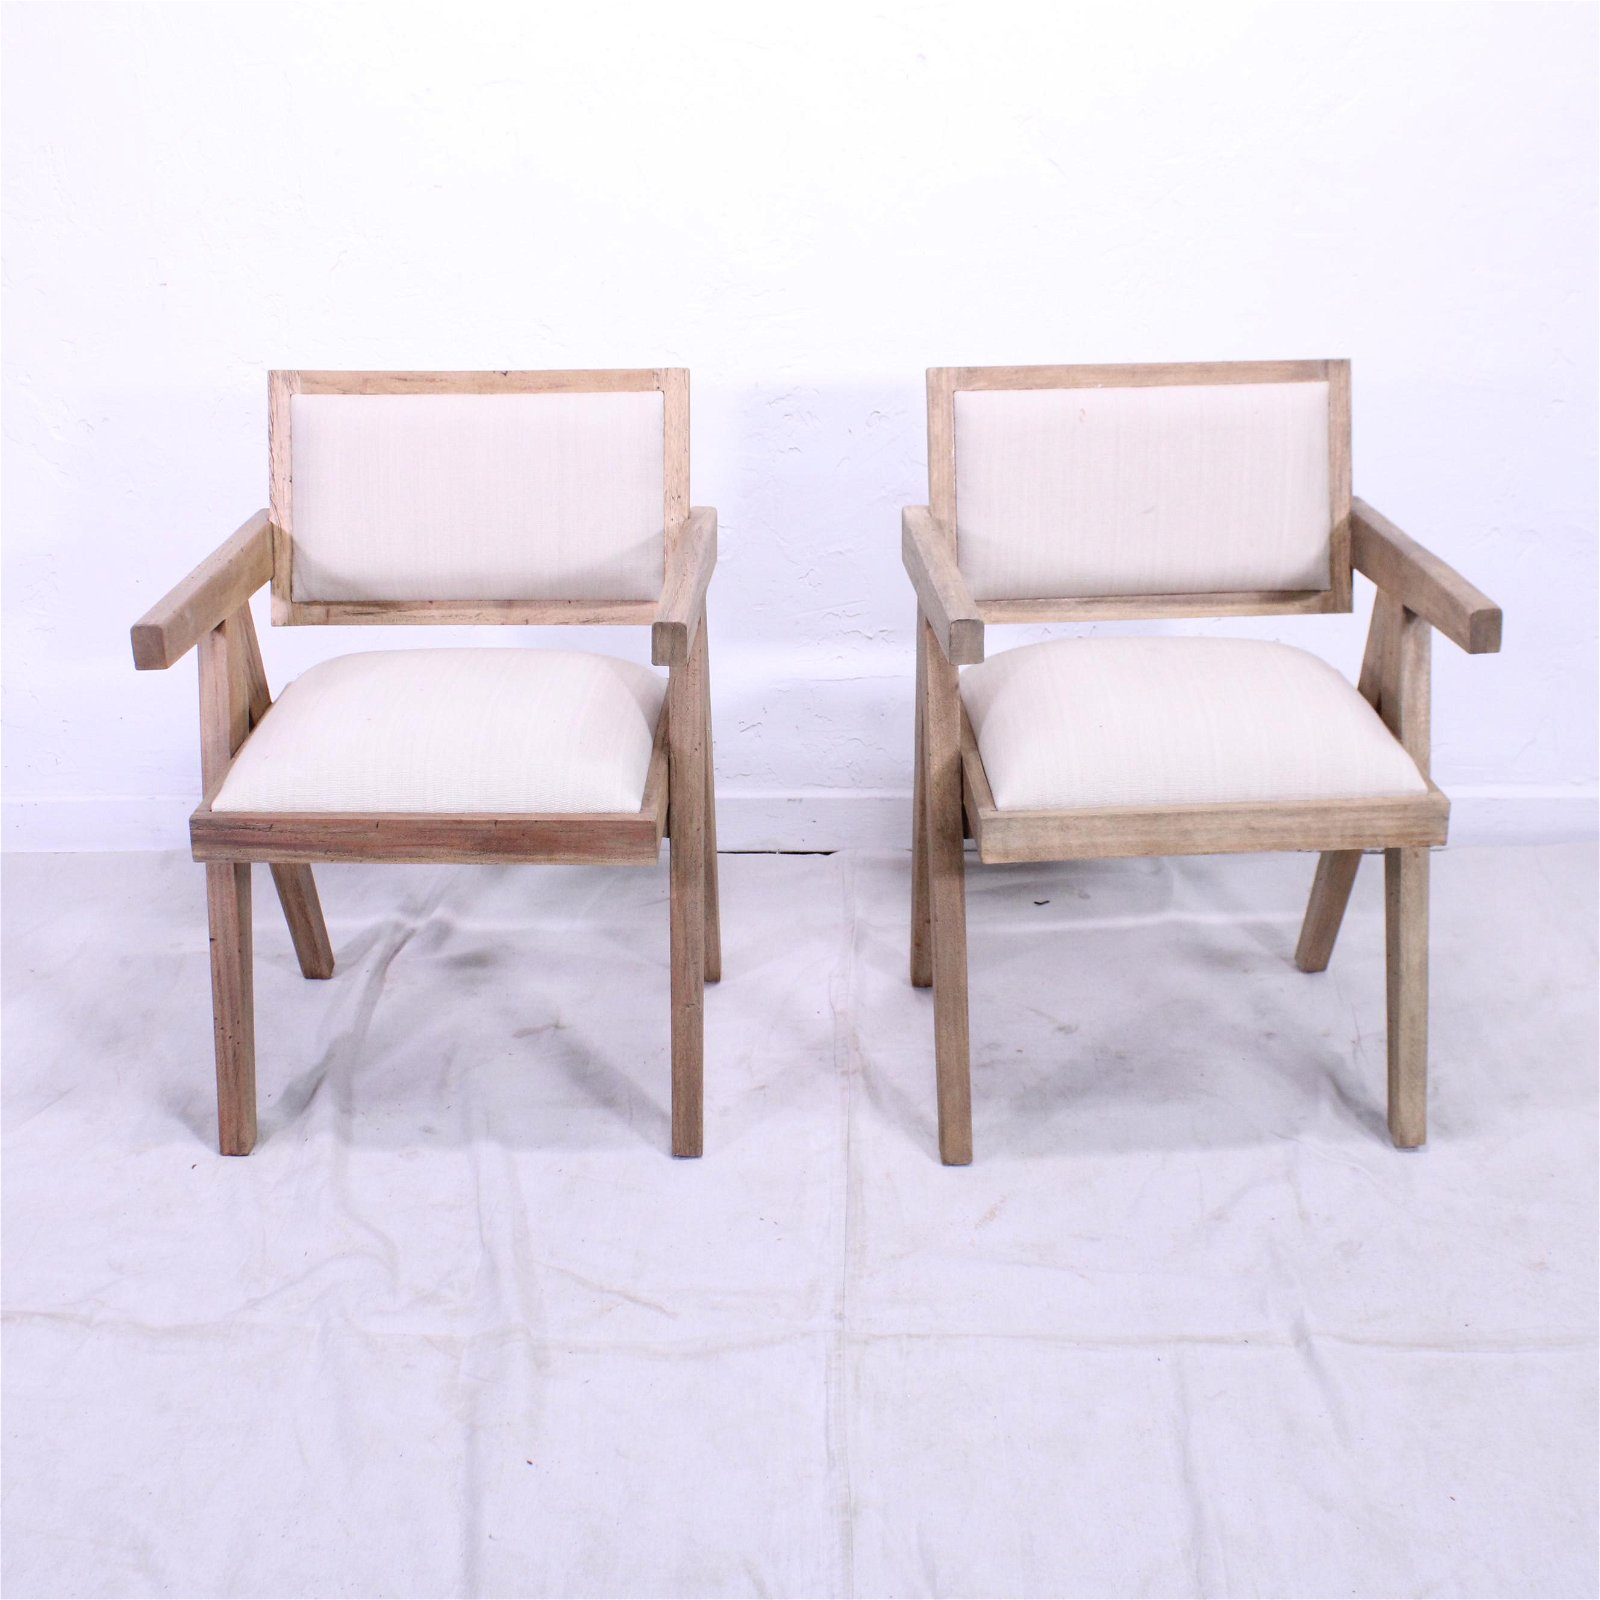 Arm Chairs in the manner of Pierre Jeanneret